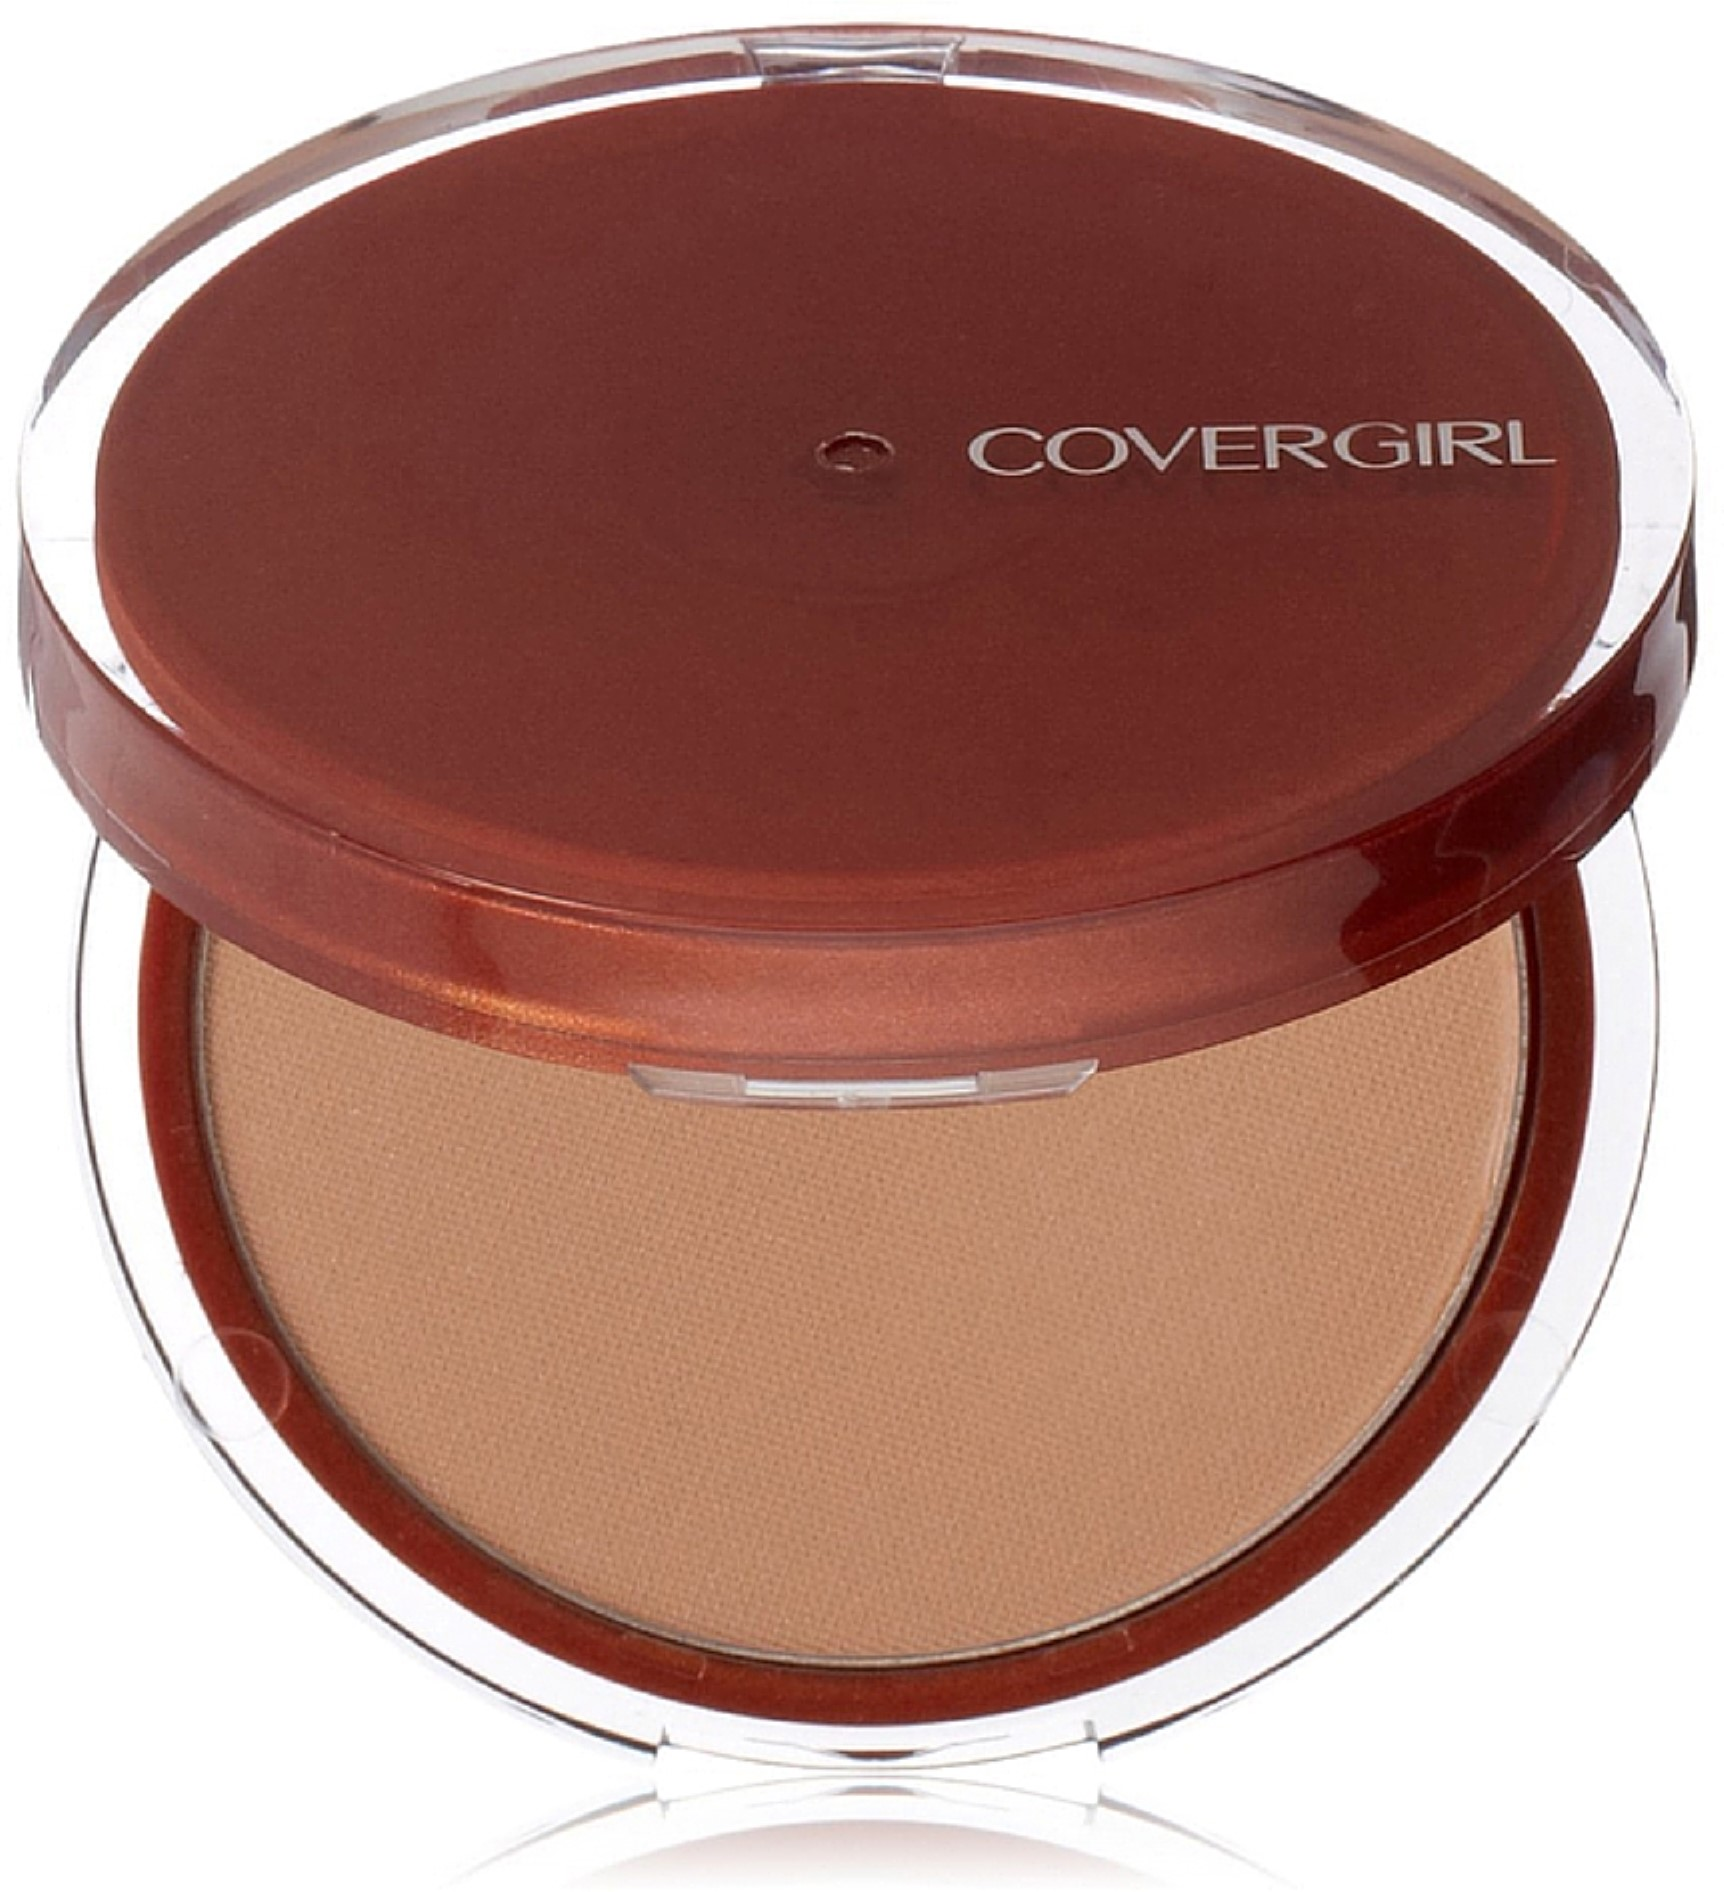 CoverGirl Clean Pressed Powder Compact, Soft Honey [155], 0.39 oz (Pack of 6)